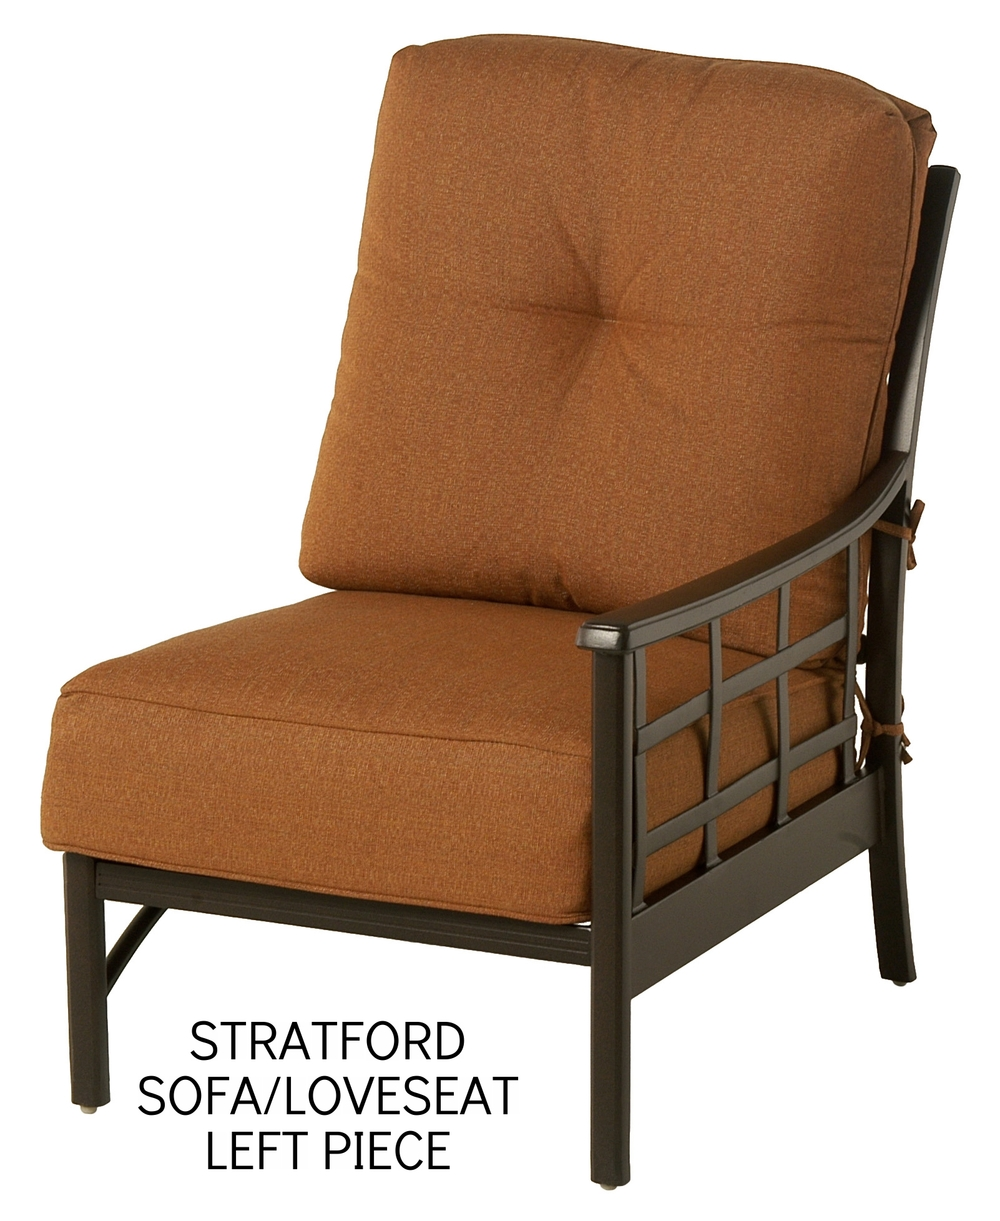 Stratford Estate Love Seat Club Left Chair.jpg